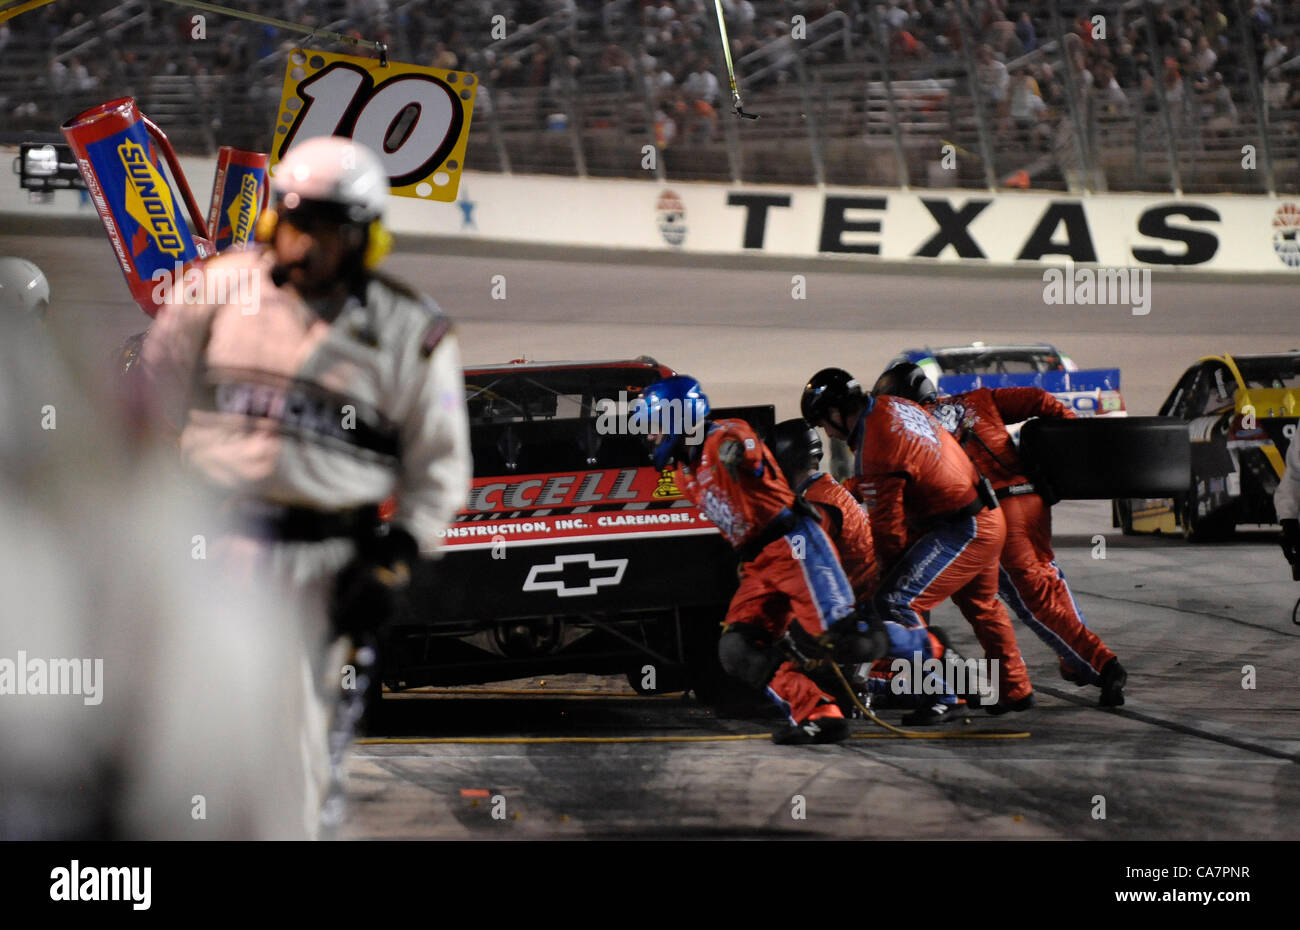 April 14, 2012 - Fort Worth, TX, USA - April 14, 2012 Ft. Worth, Tx. USA. Pitstops during the NASCAR Sprint Cup Stock Photo